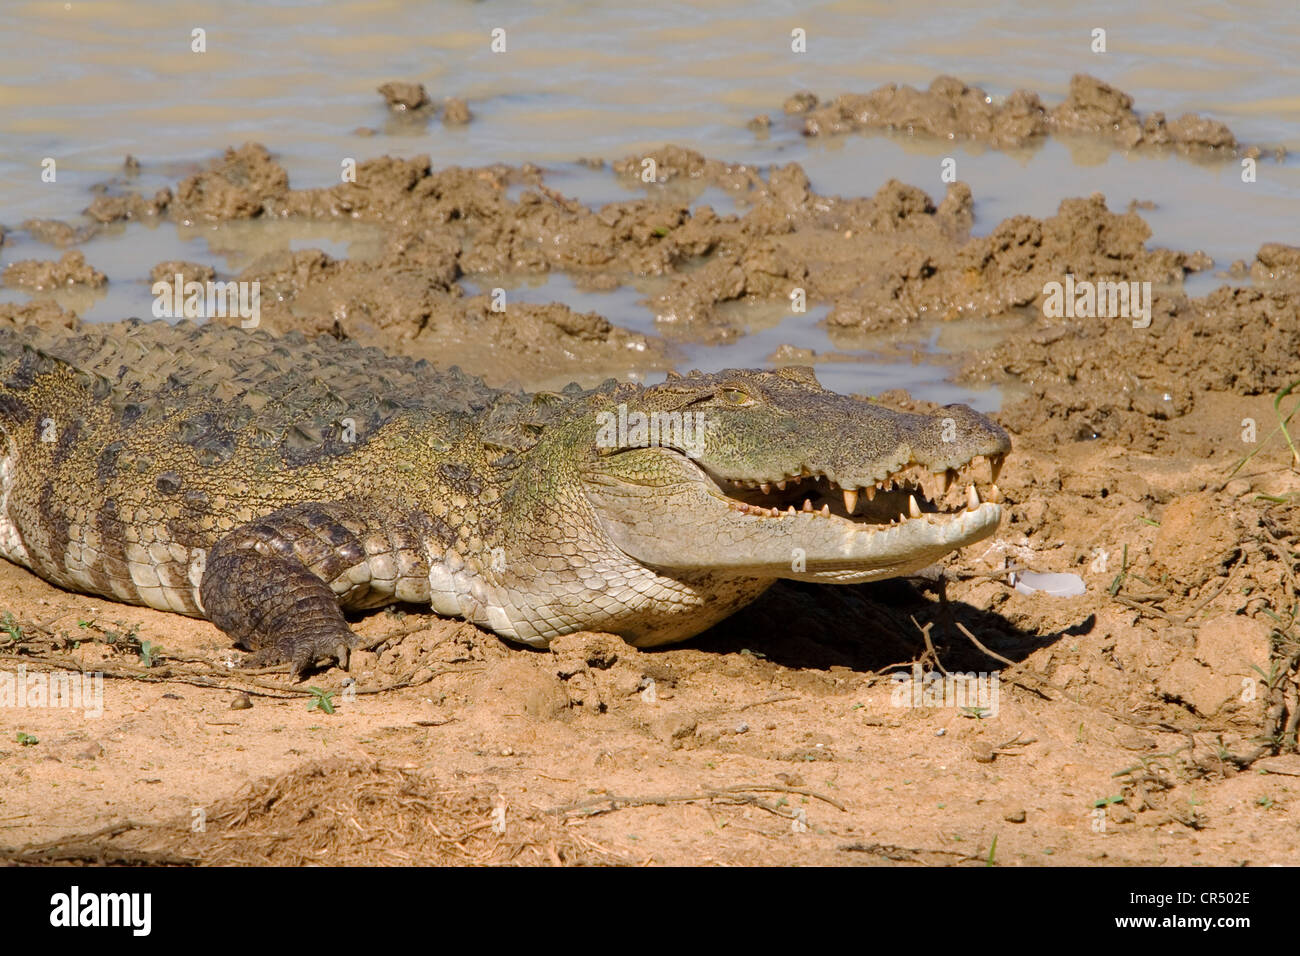 Mugger crocodile (crocodylus palustris), Yala West (Ruhuna) National Park, Sri Lanka - Stock Image